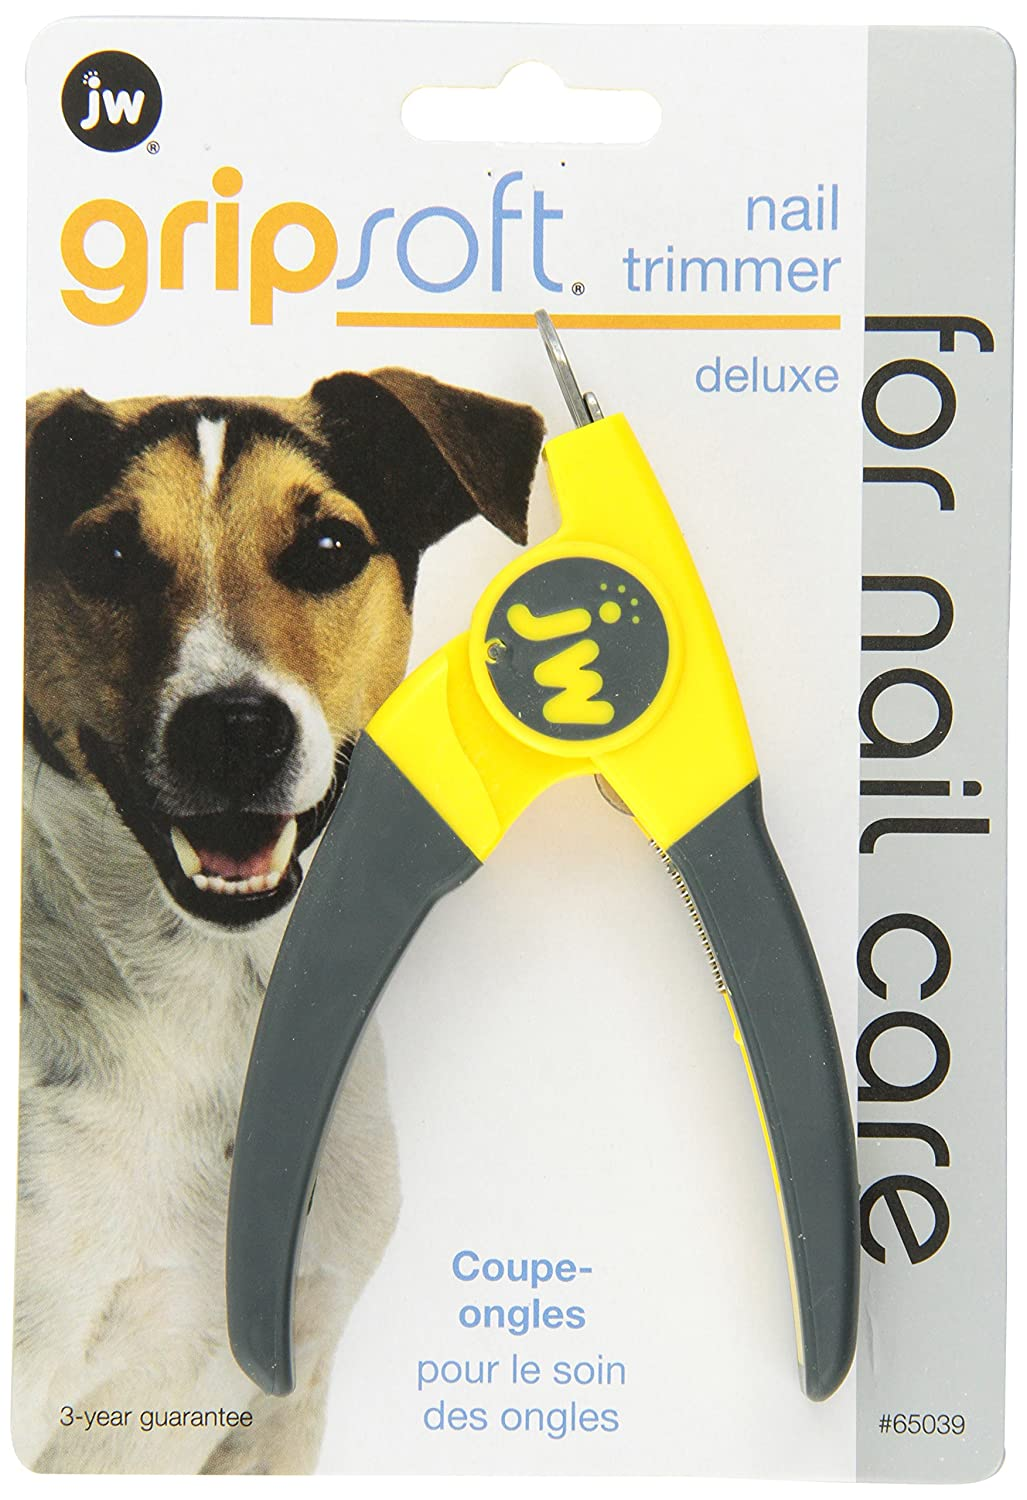 Amazon JW Pet pany Deluxe Nail Trimmer for Dogs Pet